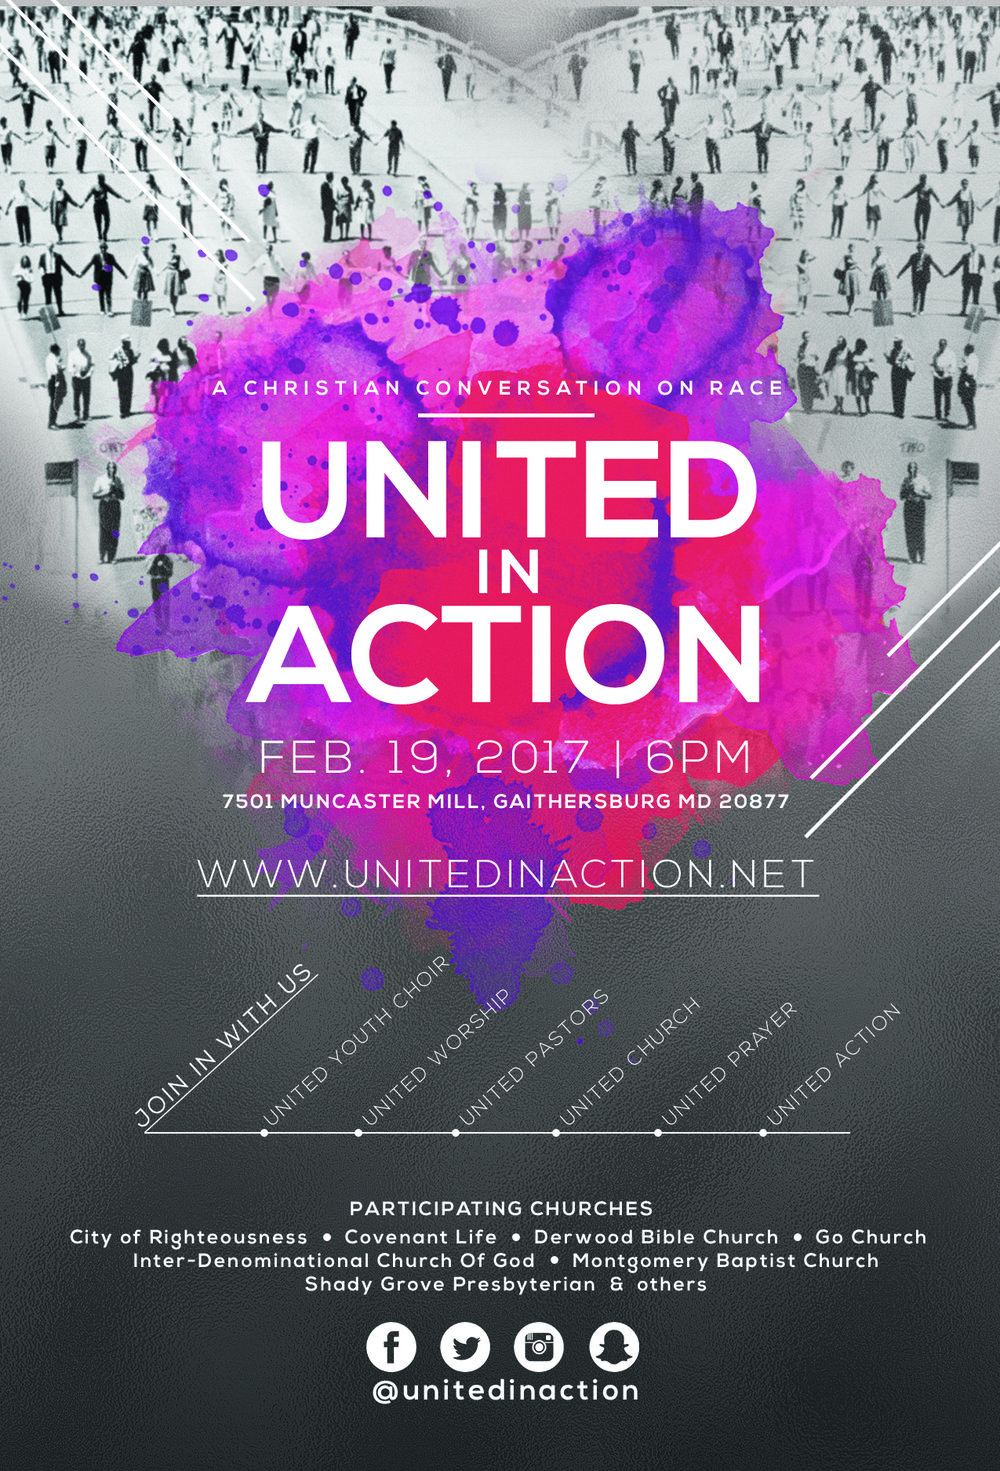 United In Action 4x6 flyer thumbnail.jpg